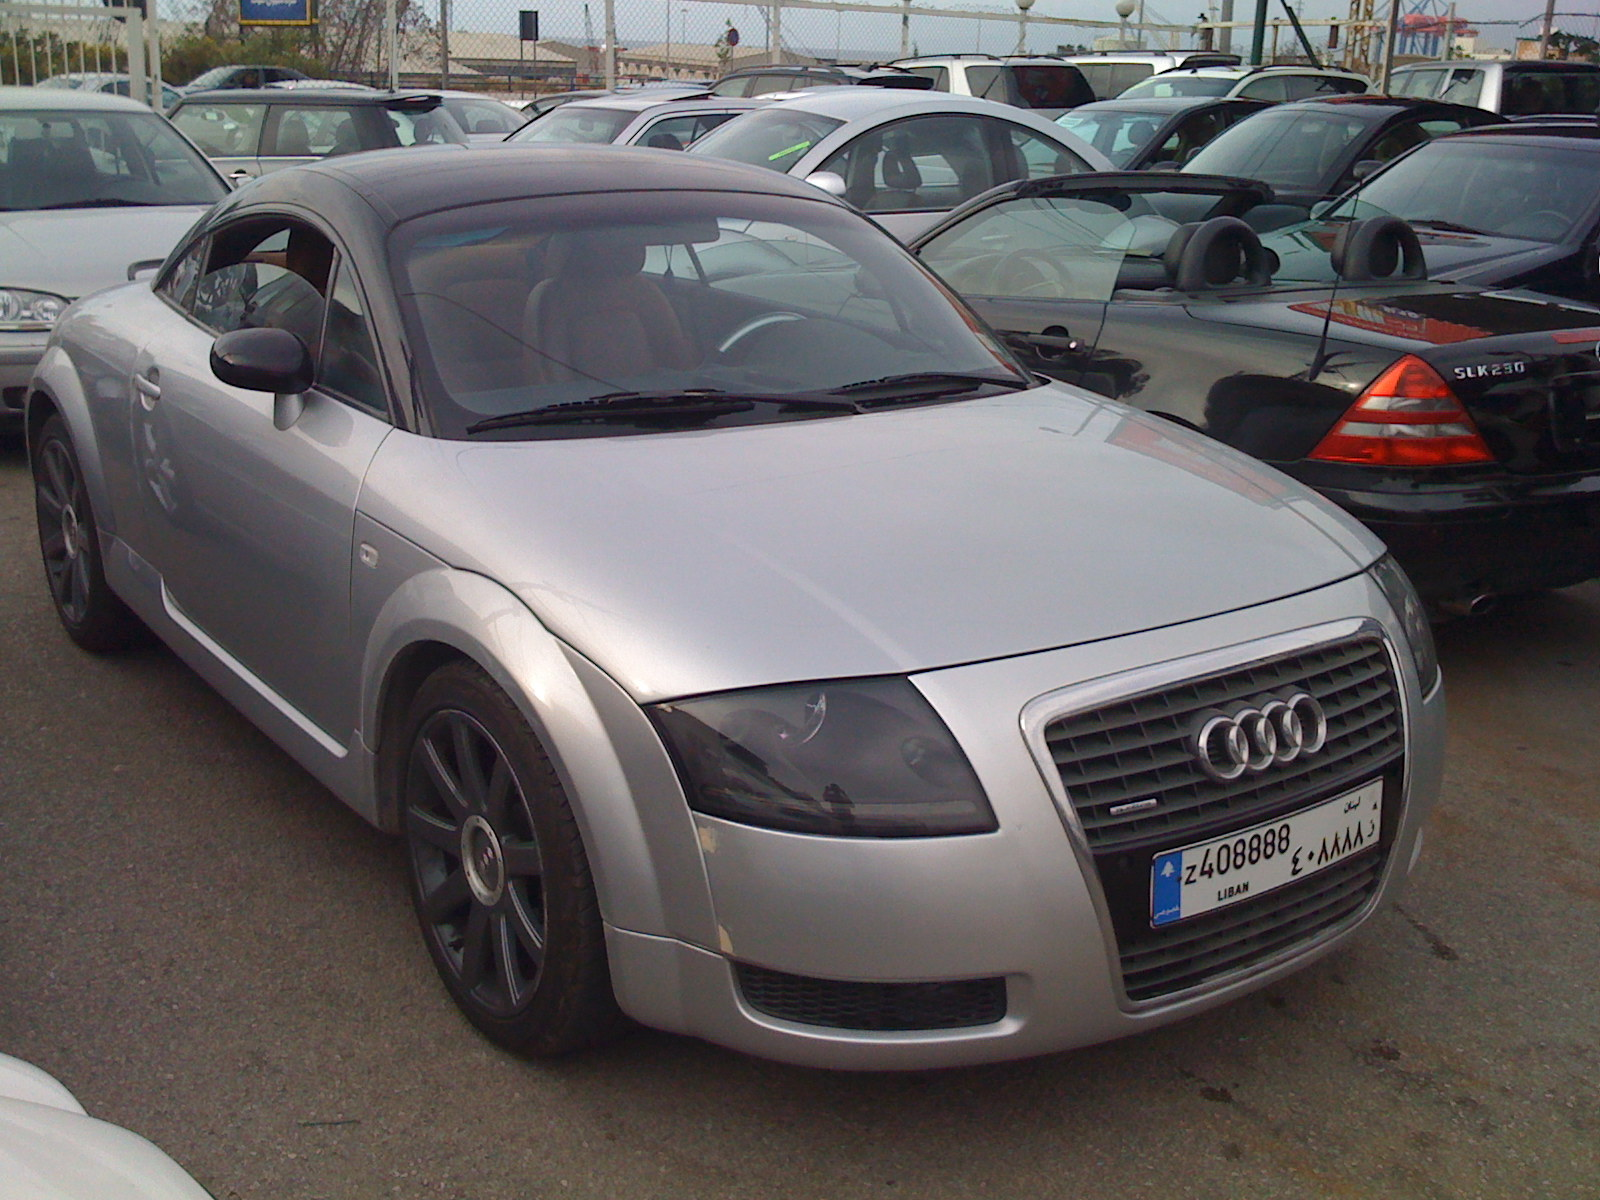 tee boy 1999 audi tt specs photos modification info at cardomain. Black Bedroom Furniture Sets. Home Design Ideas